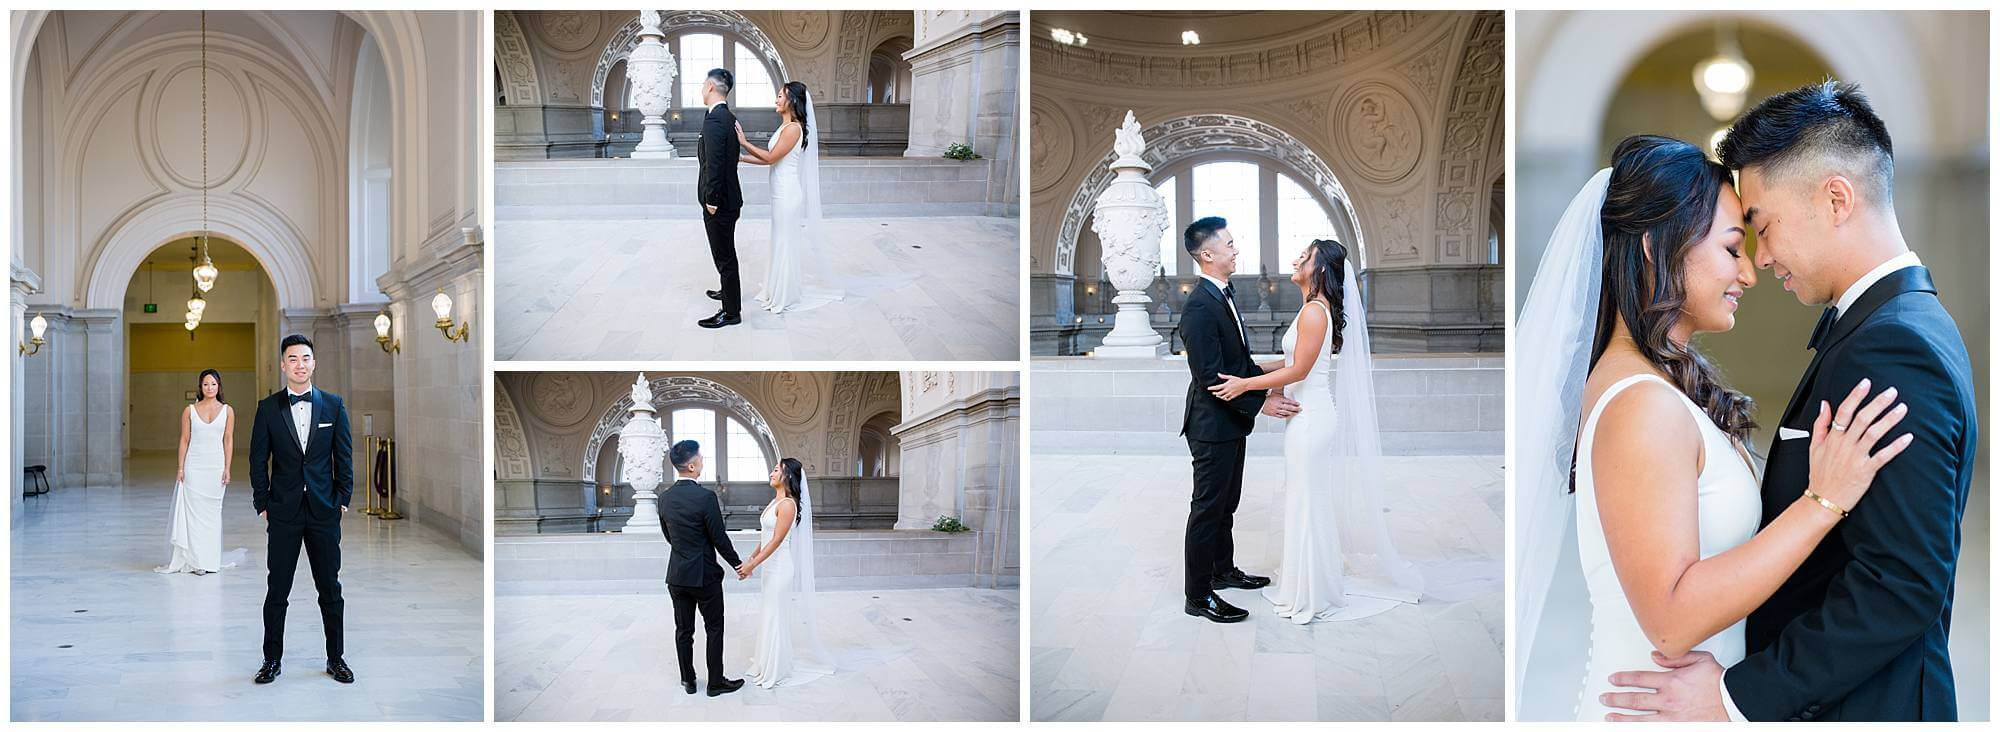 Maya and Kevin did a first look before their city hall wedding